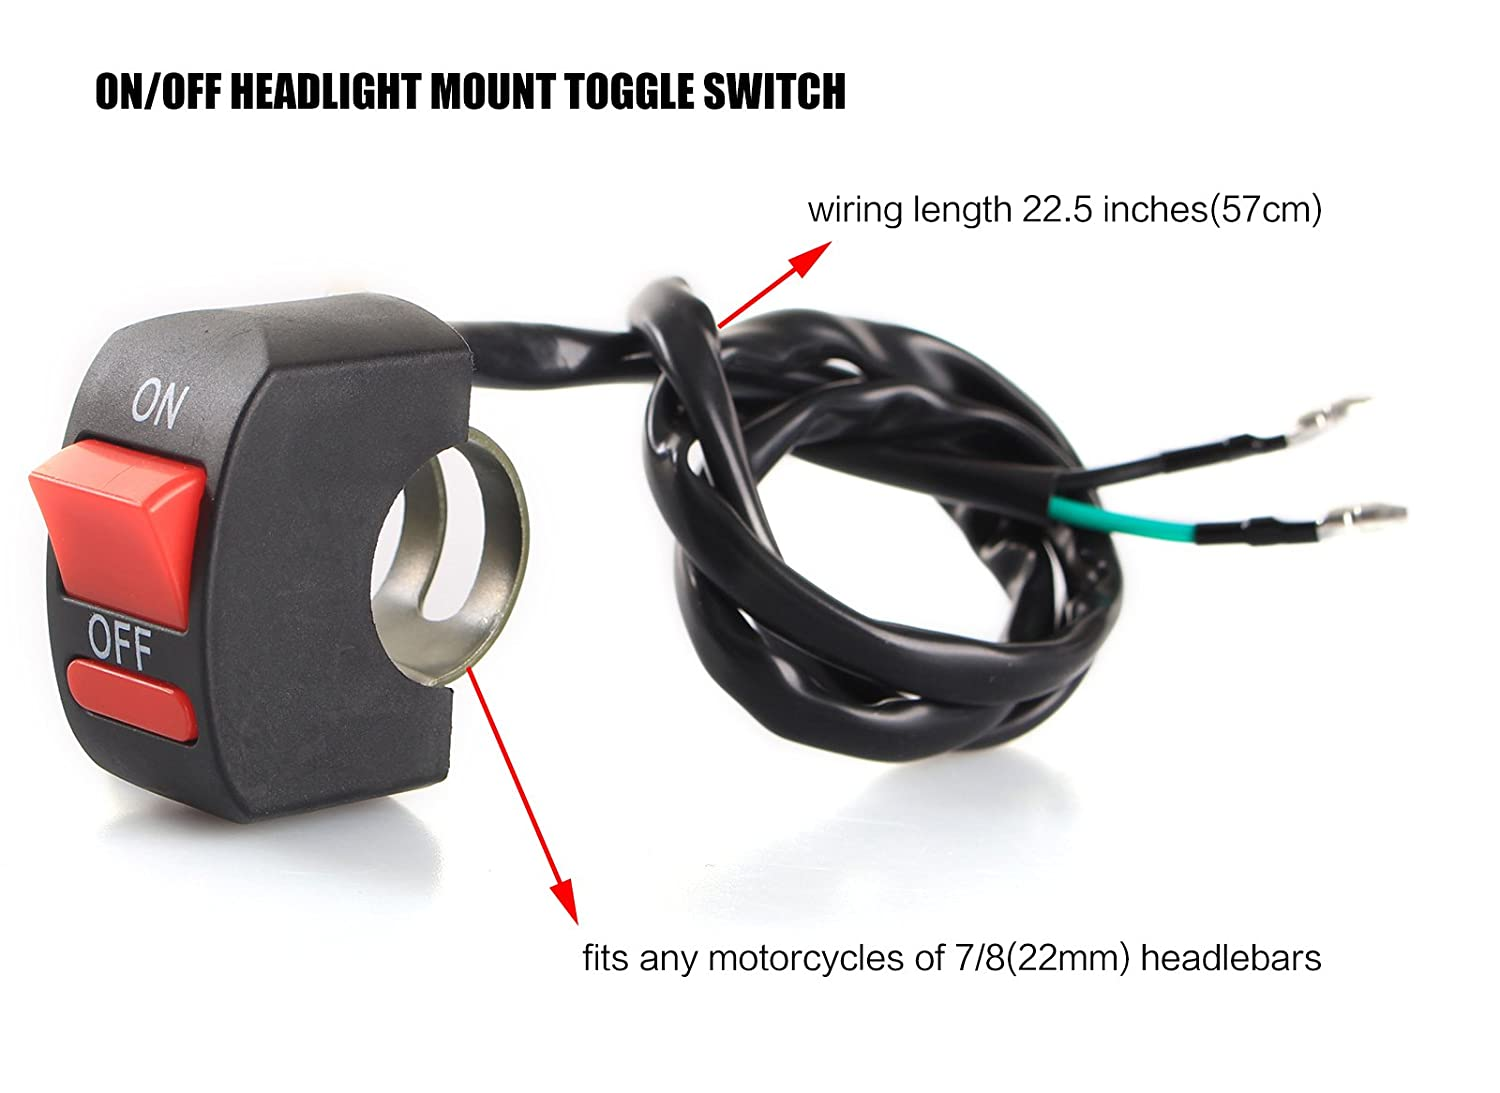 amazon com ledur switch on off motorcycle 7 9 inch universal motorcycle voltage regulator wiring amazon com ledur switch on off motorcycle 7 9 inch universal handlebar mounting switch for headlight fog daytime running light automotive